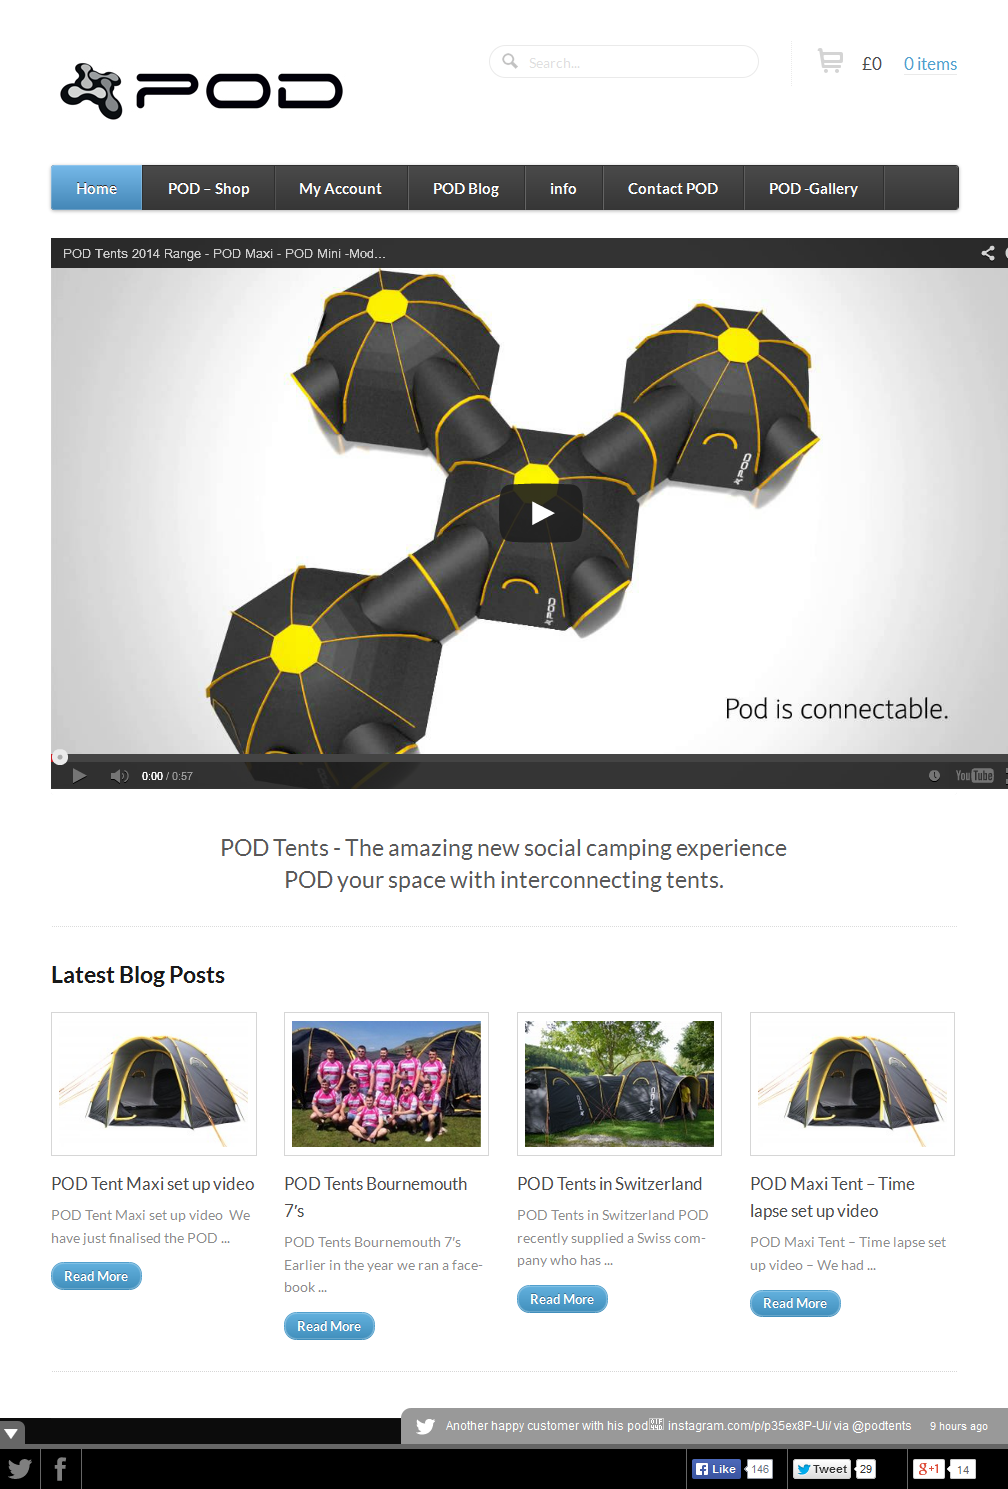 POD Tents - The amazing new social camping experience